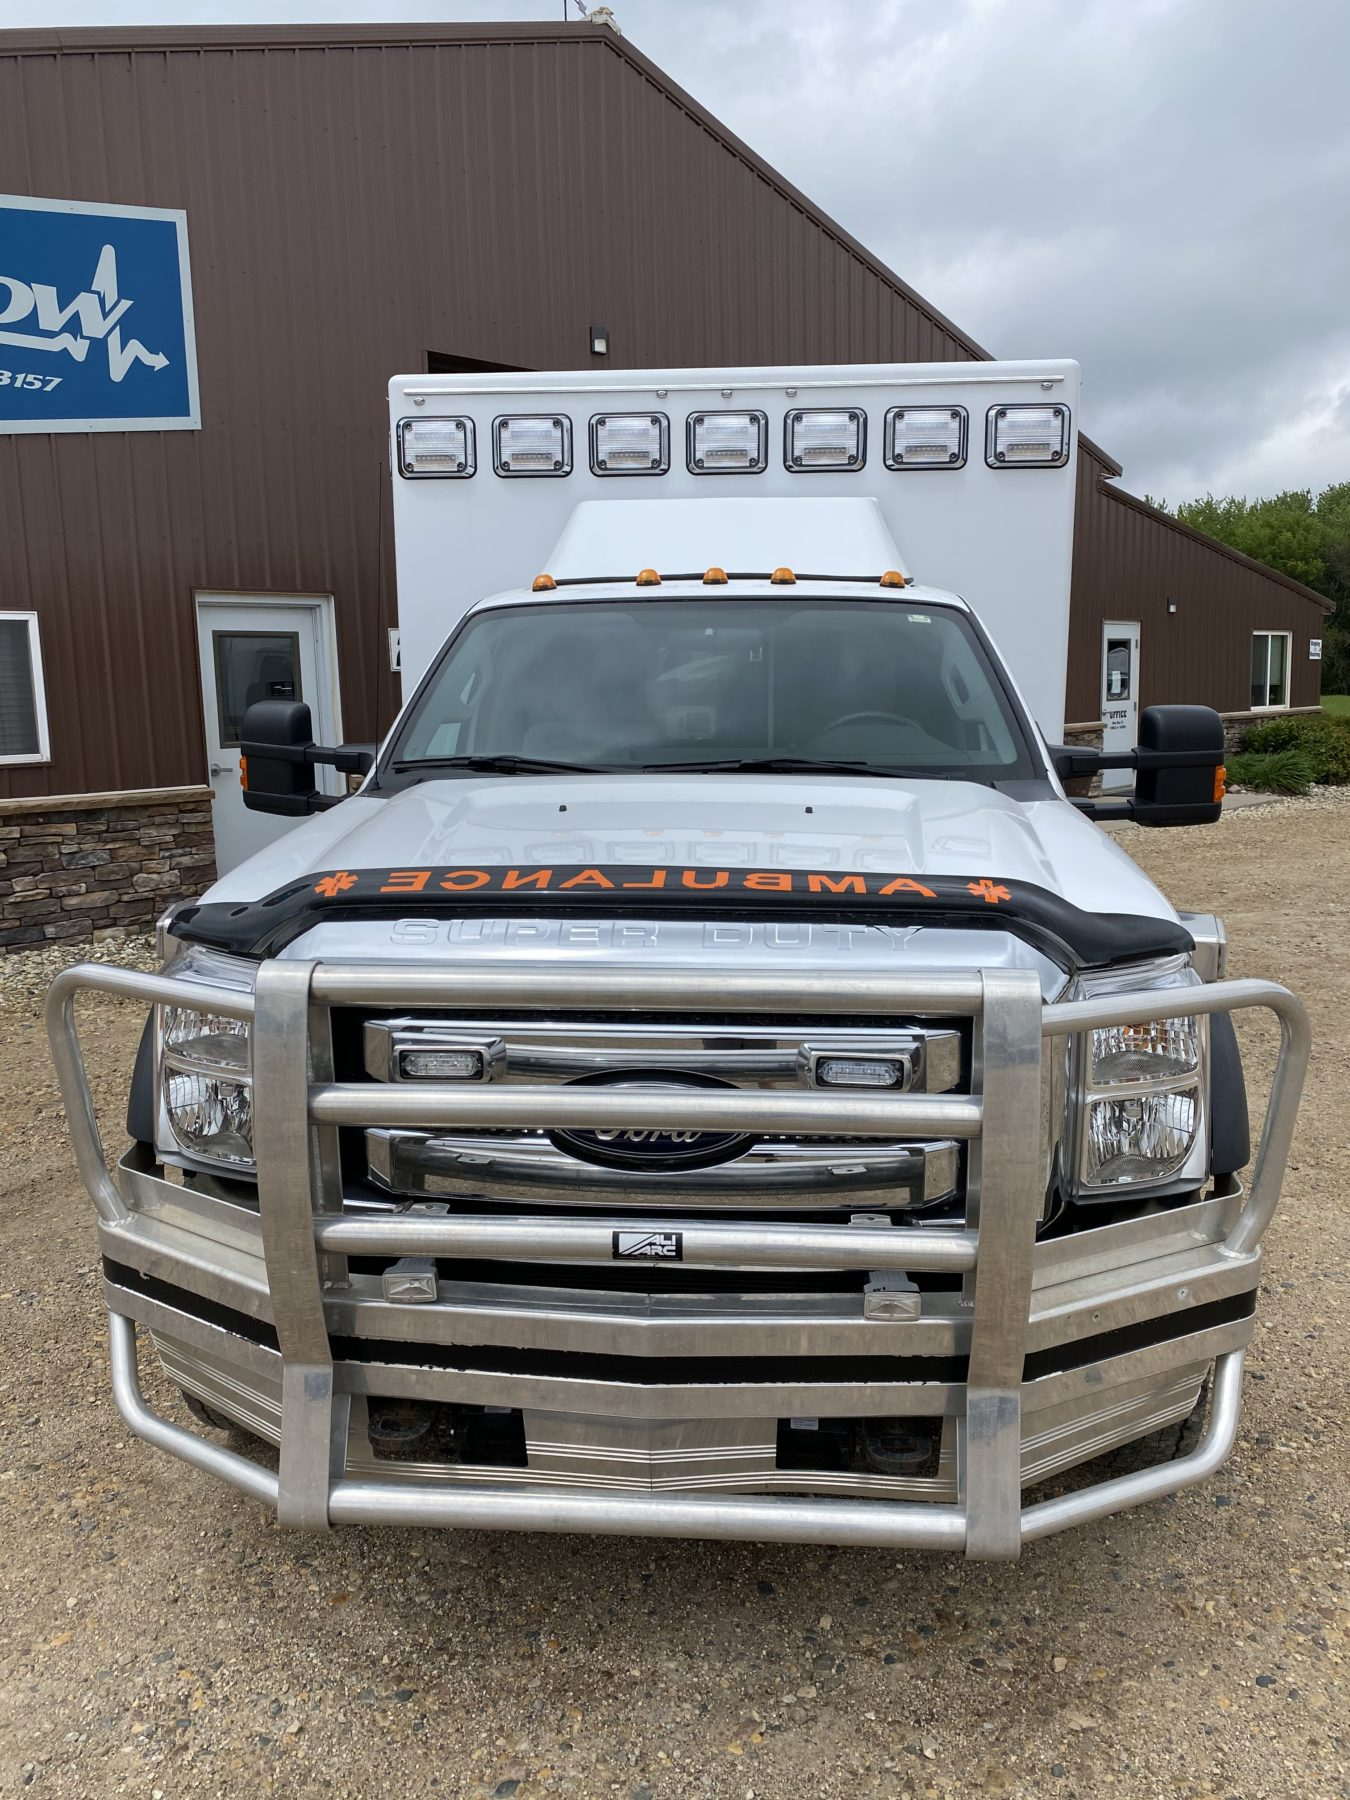 2012 Ford F450 Heavy Duty Ambulance For Sale – Picture 7